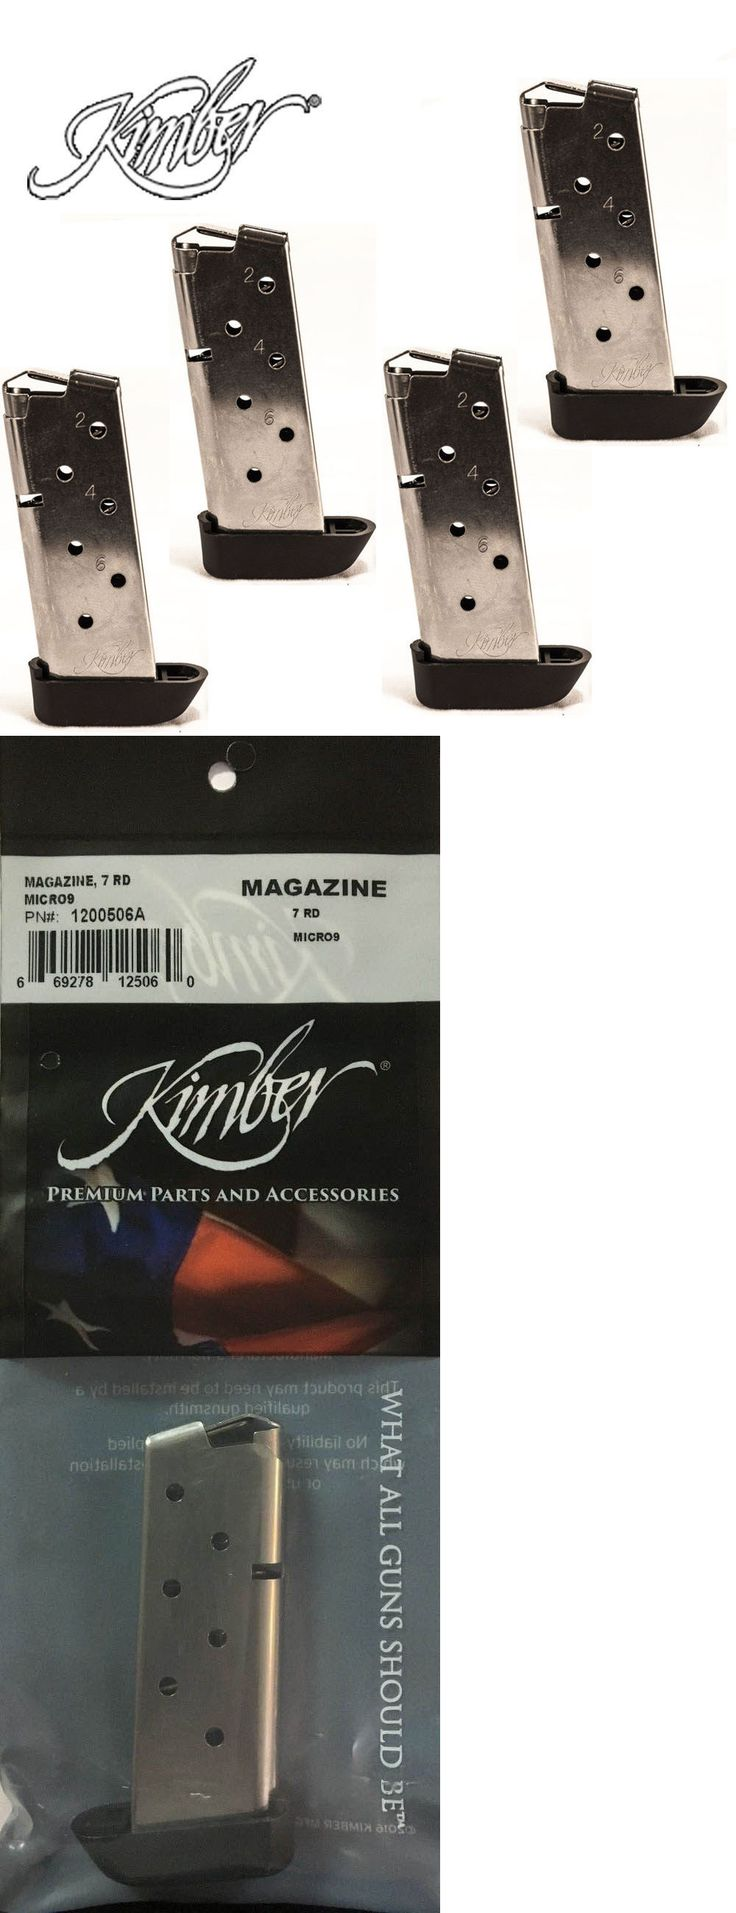 Magazines 177879: Kimber Factory ( Micro 9 ) 9Mm 7-Round Magazine W Extension (4-Pack) #1200506A -> BUY IT NOW ONLY: $100 on eBay!